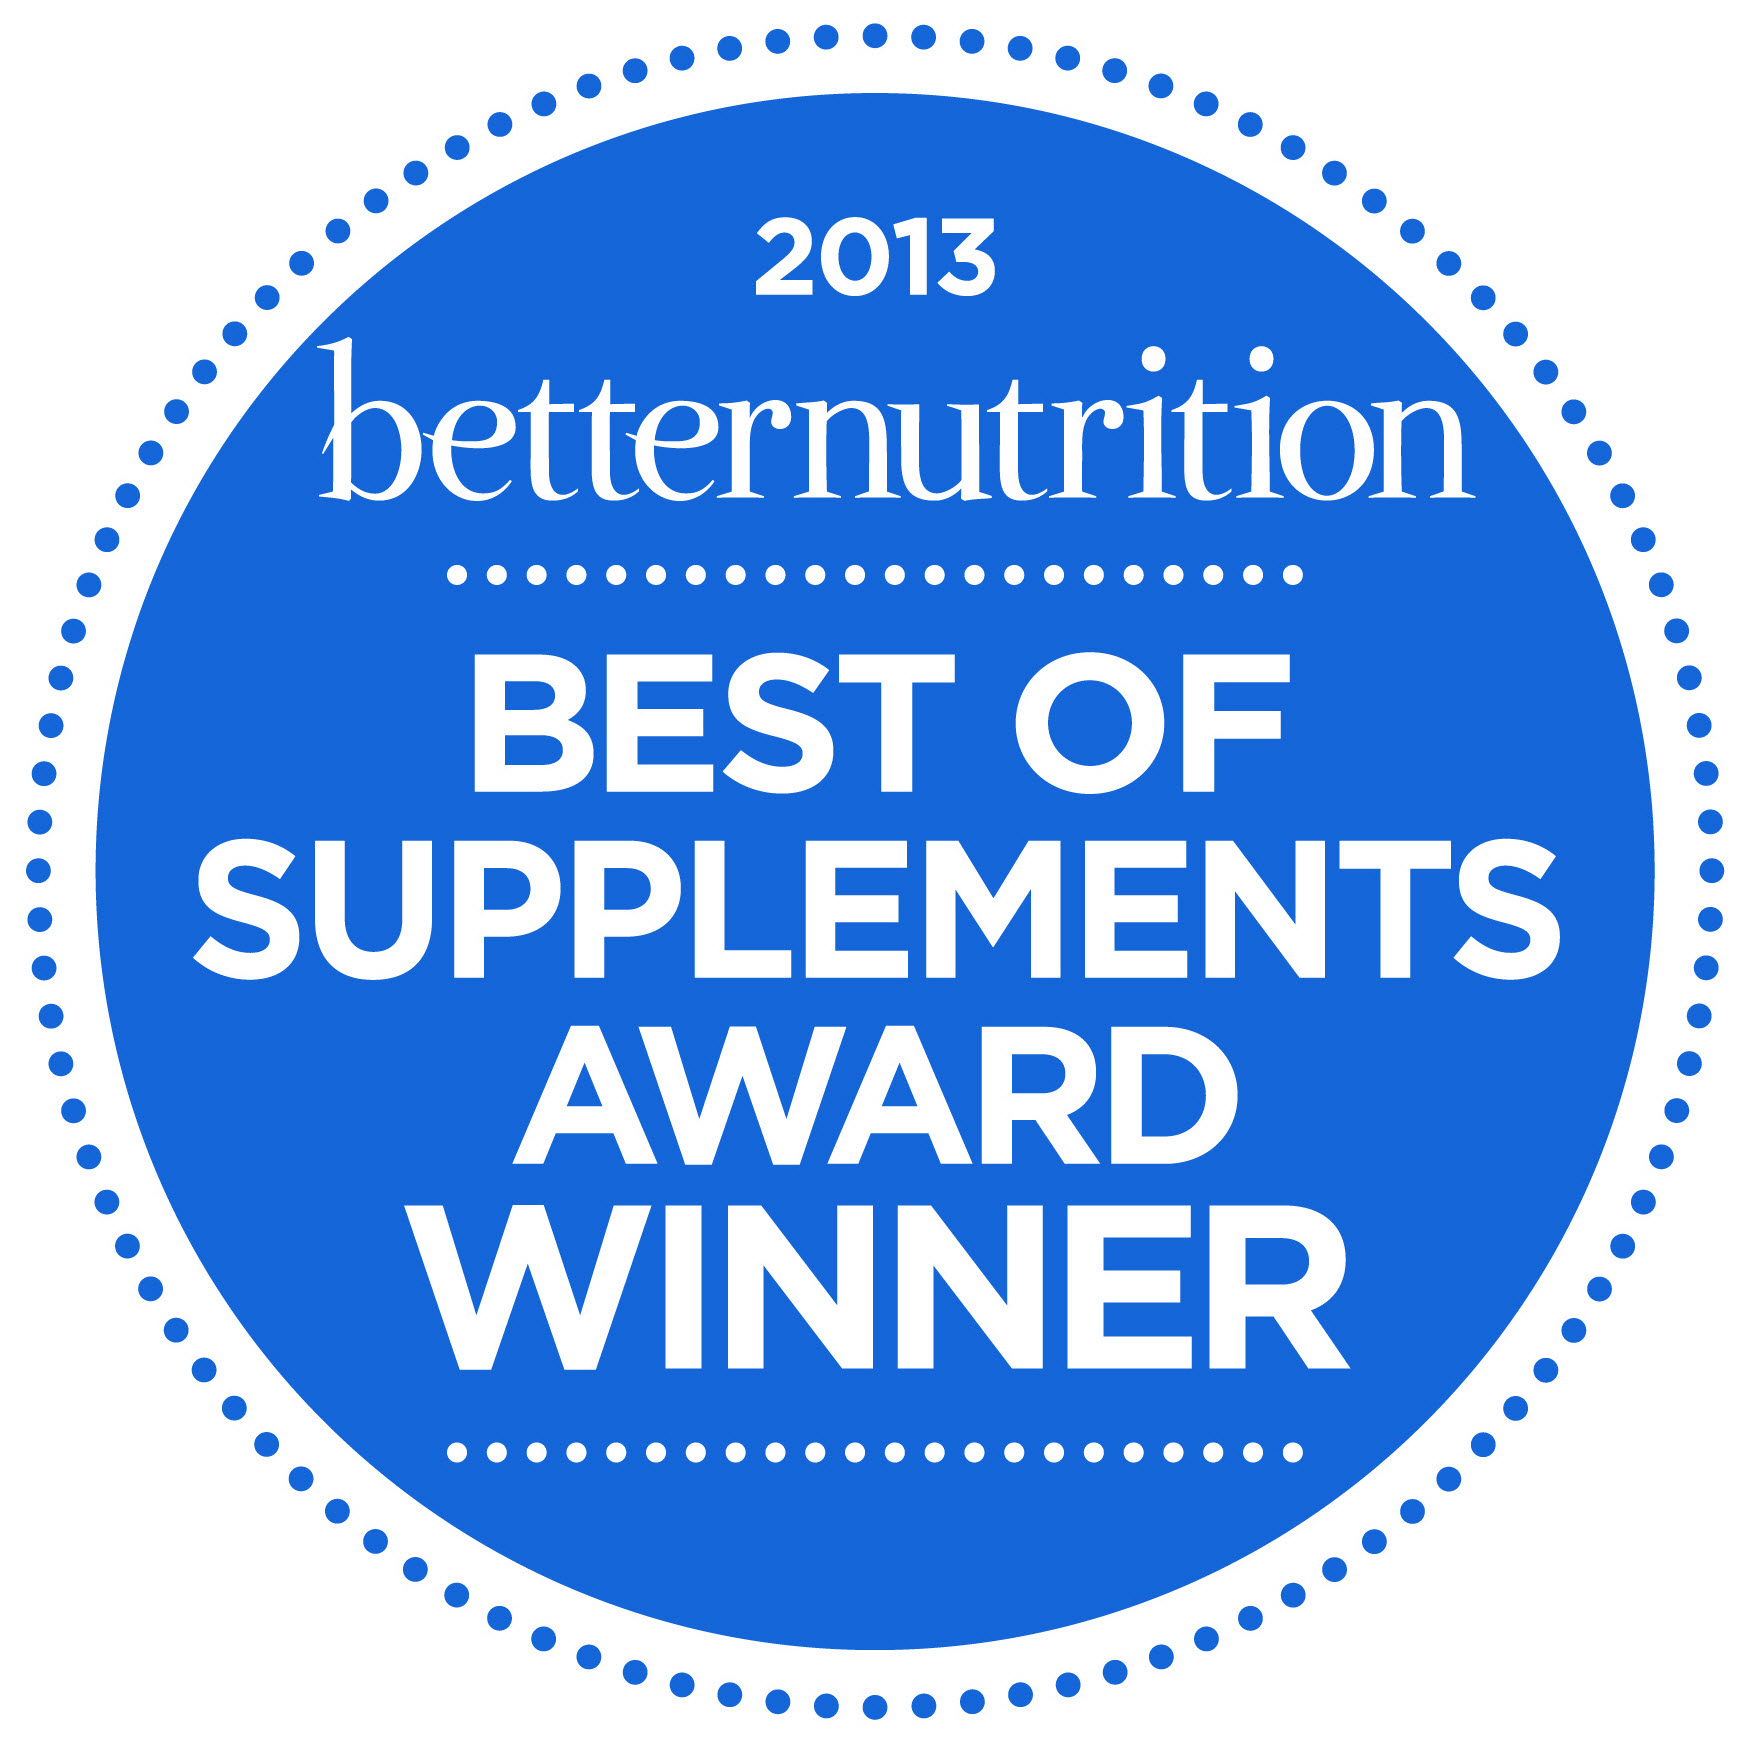 Supplement of the Year 2013